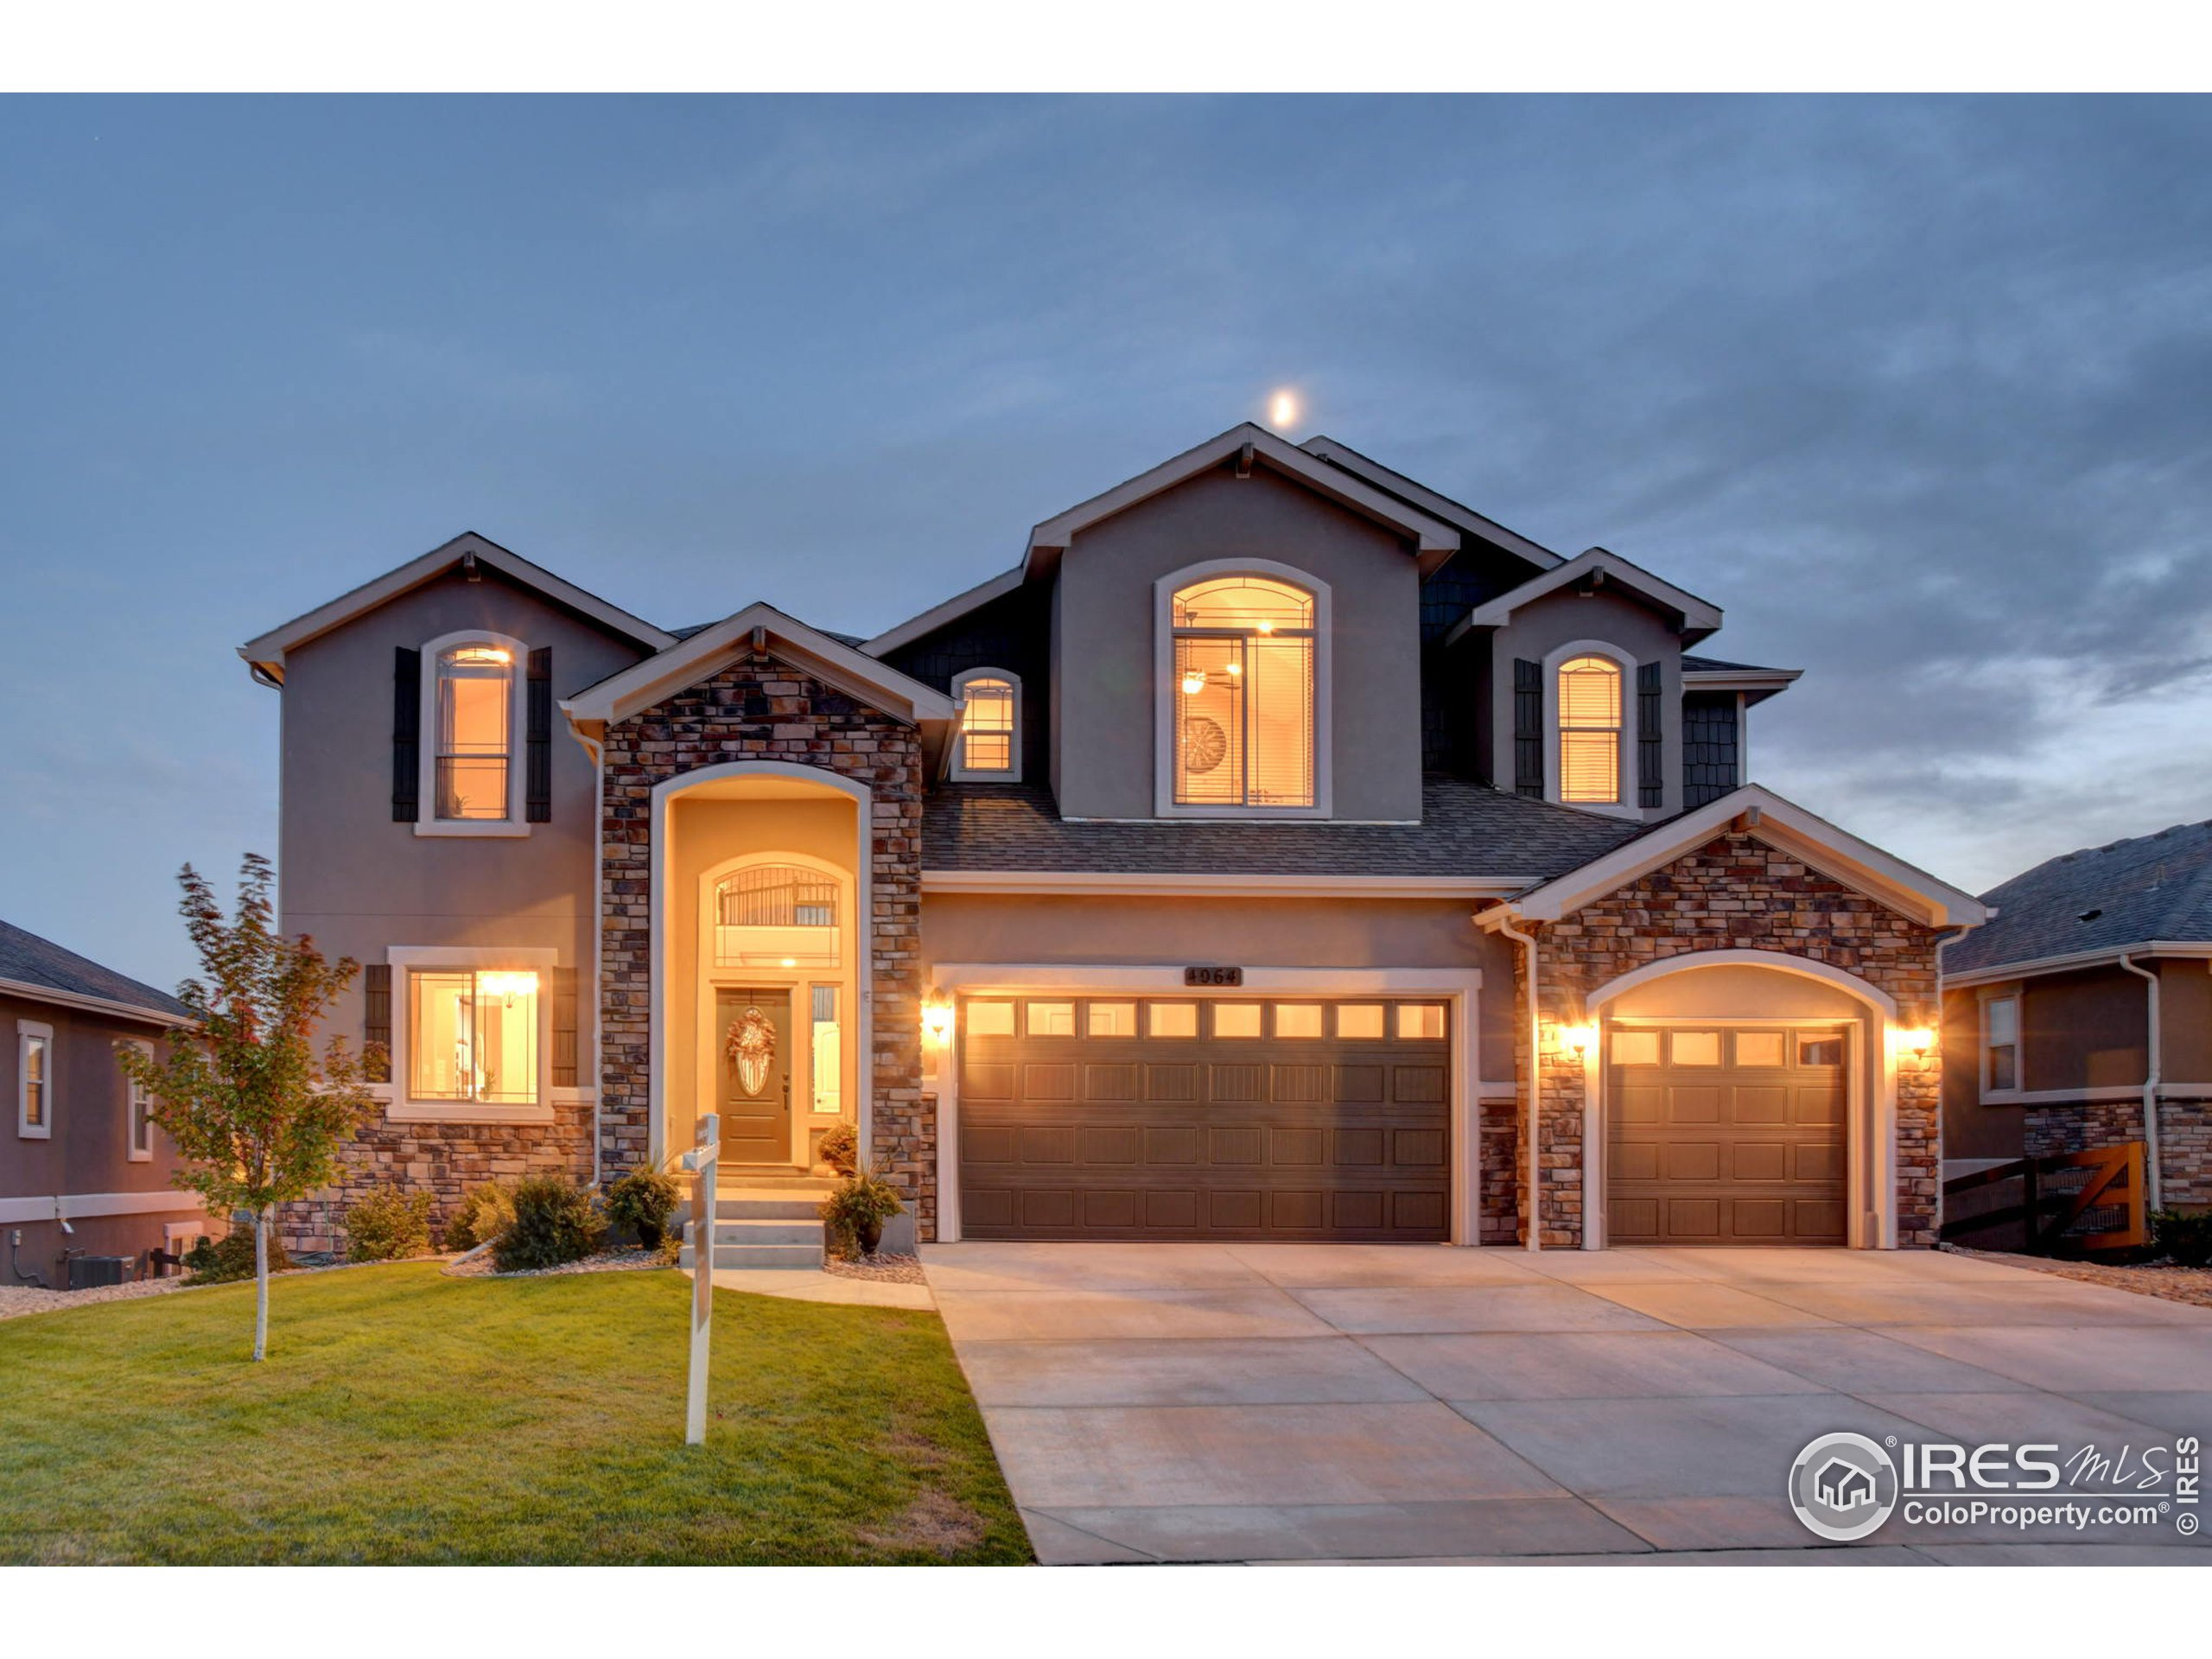 4064 Carroway Seed Dr, Johnstown, CO 80534